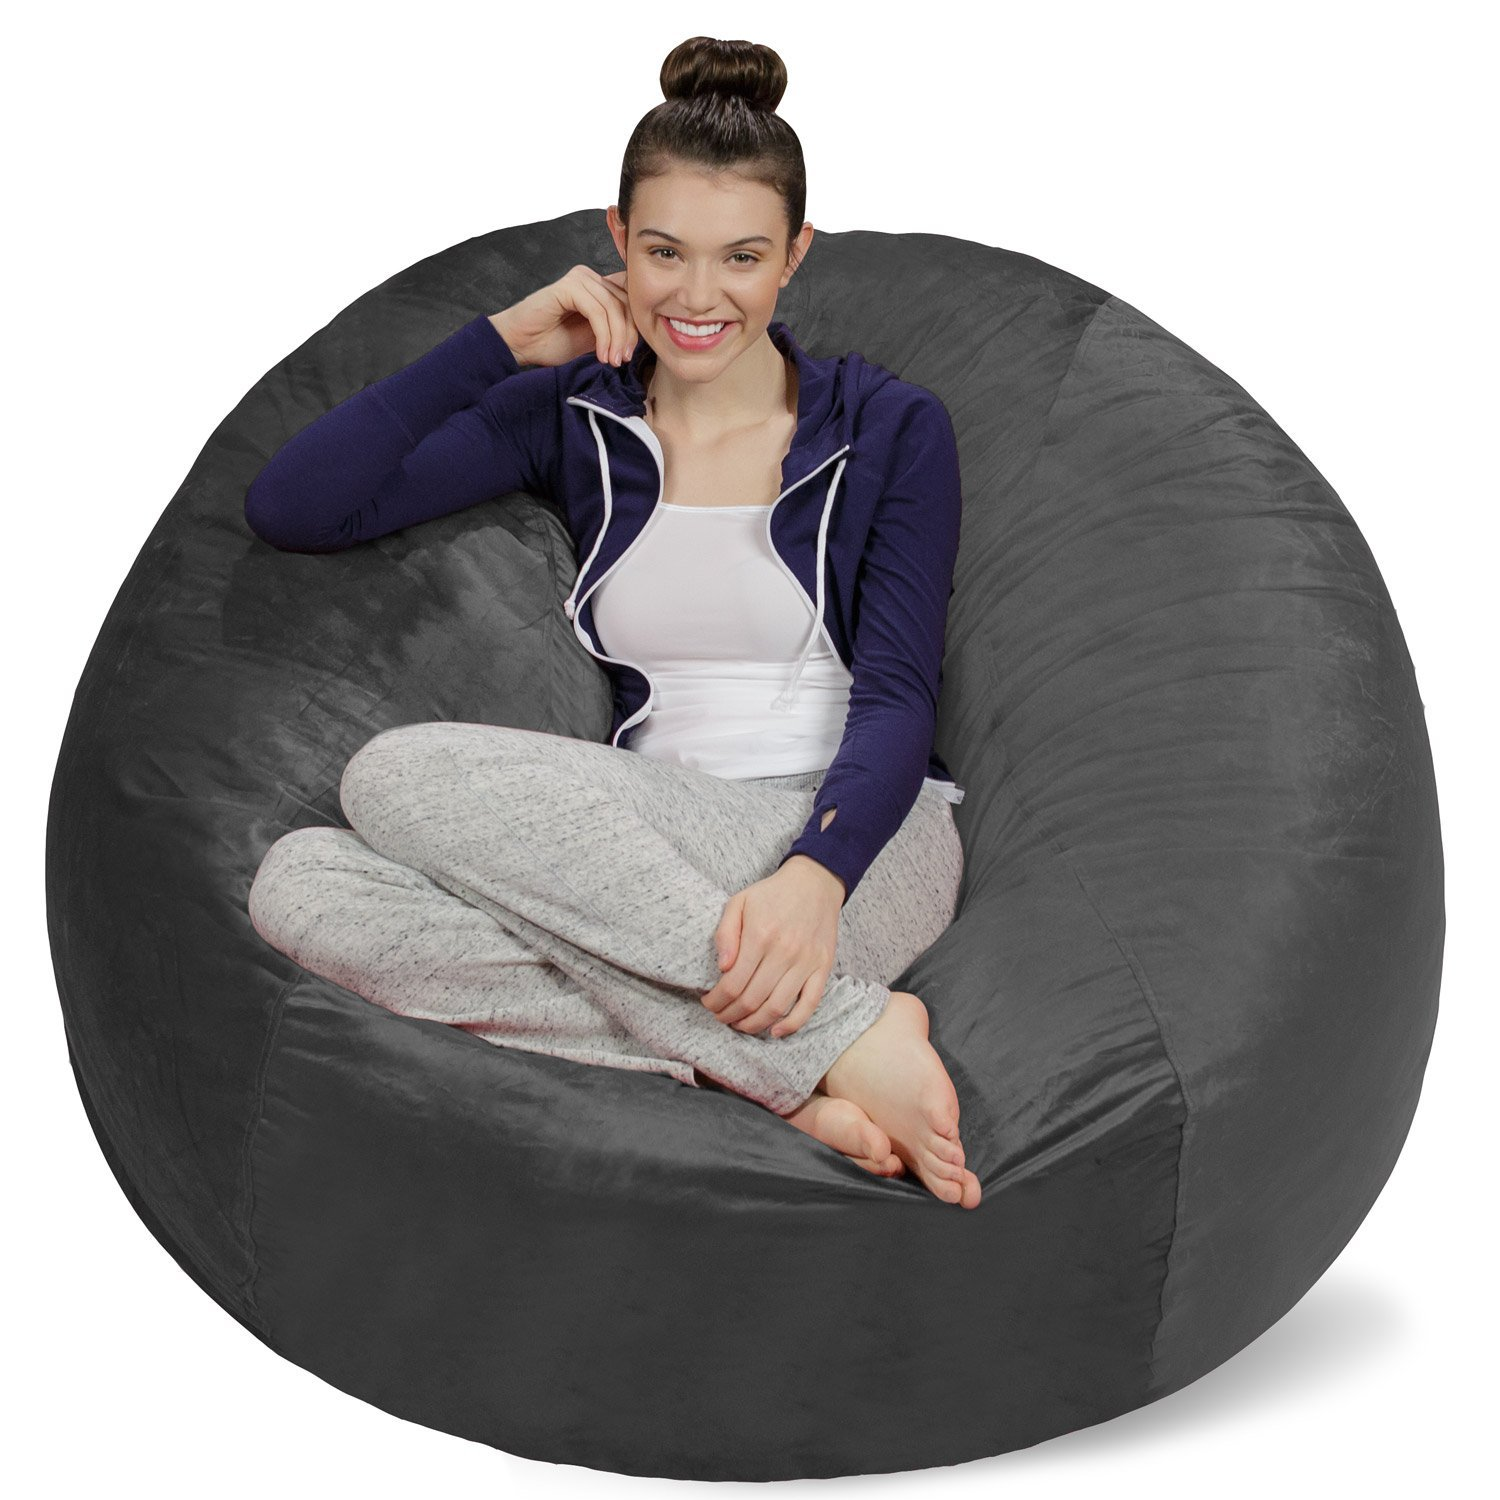 Sofa Sack   Bean Bags Bean Bag Chair, 5 Feet, Charcoal